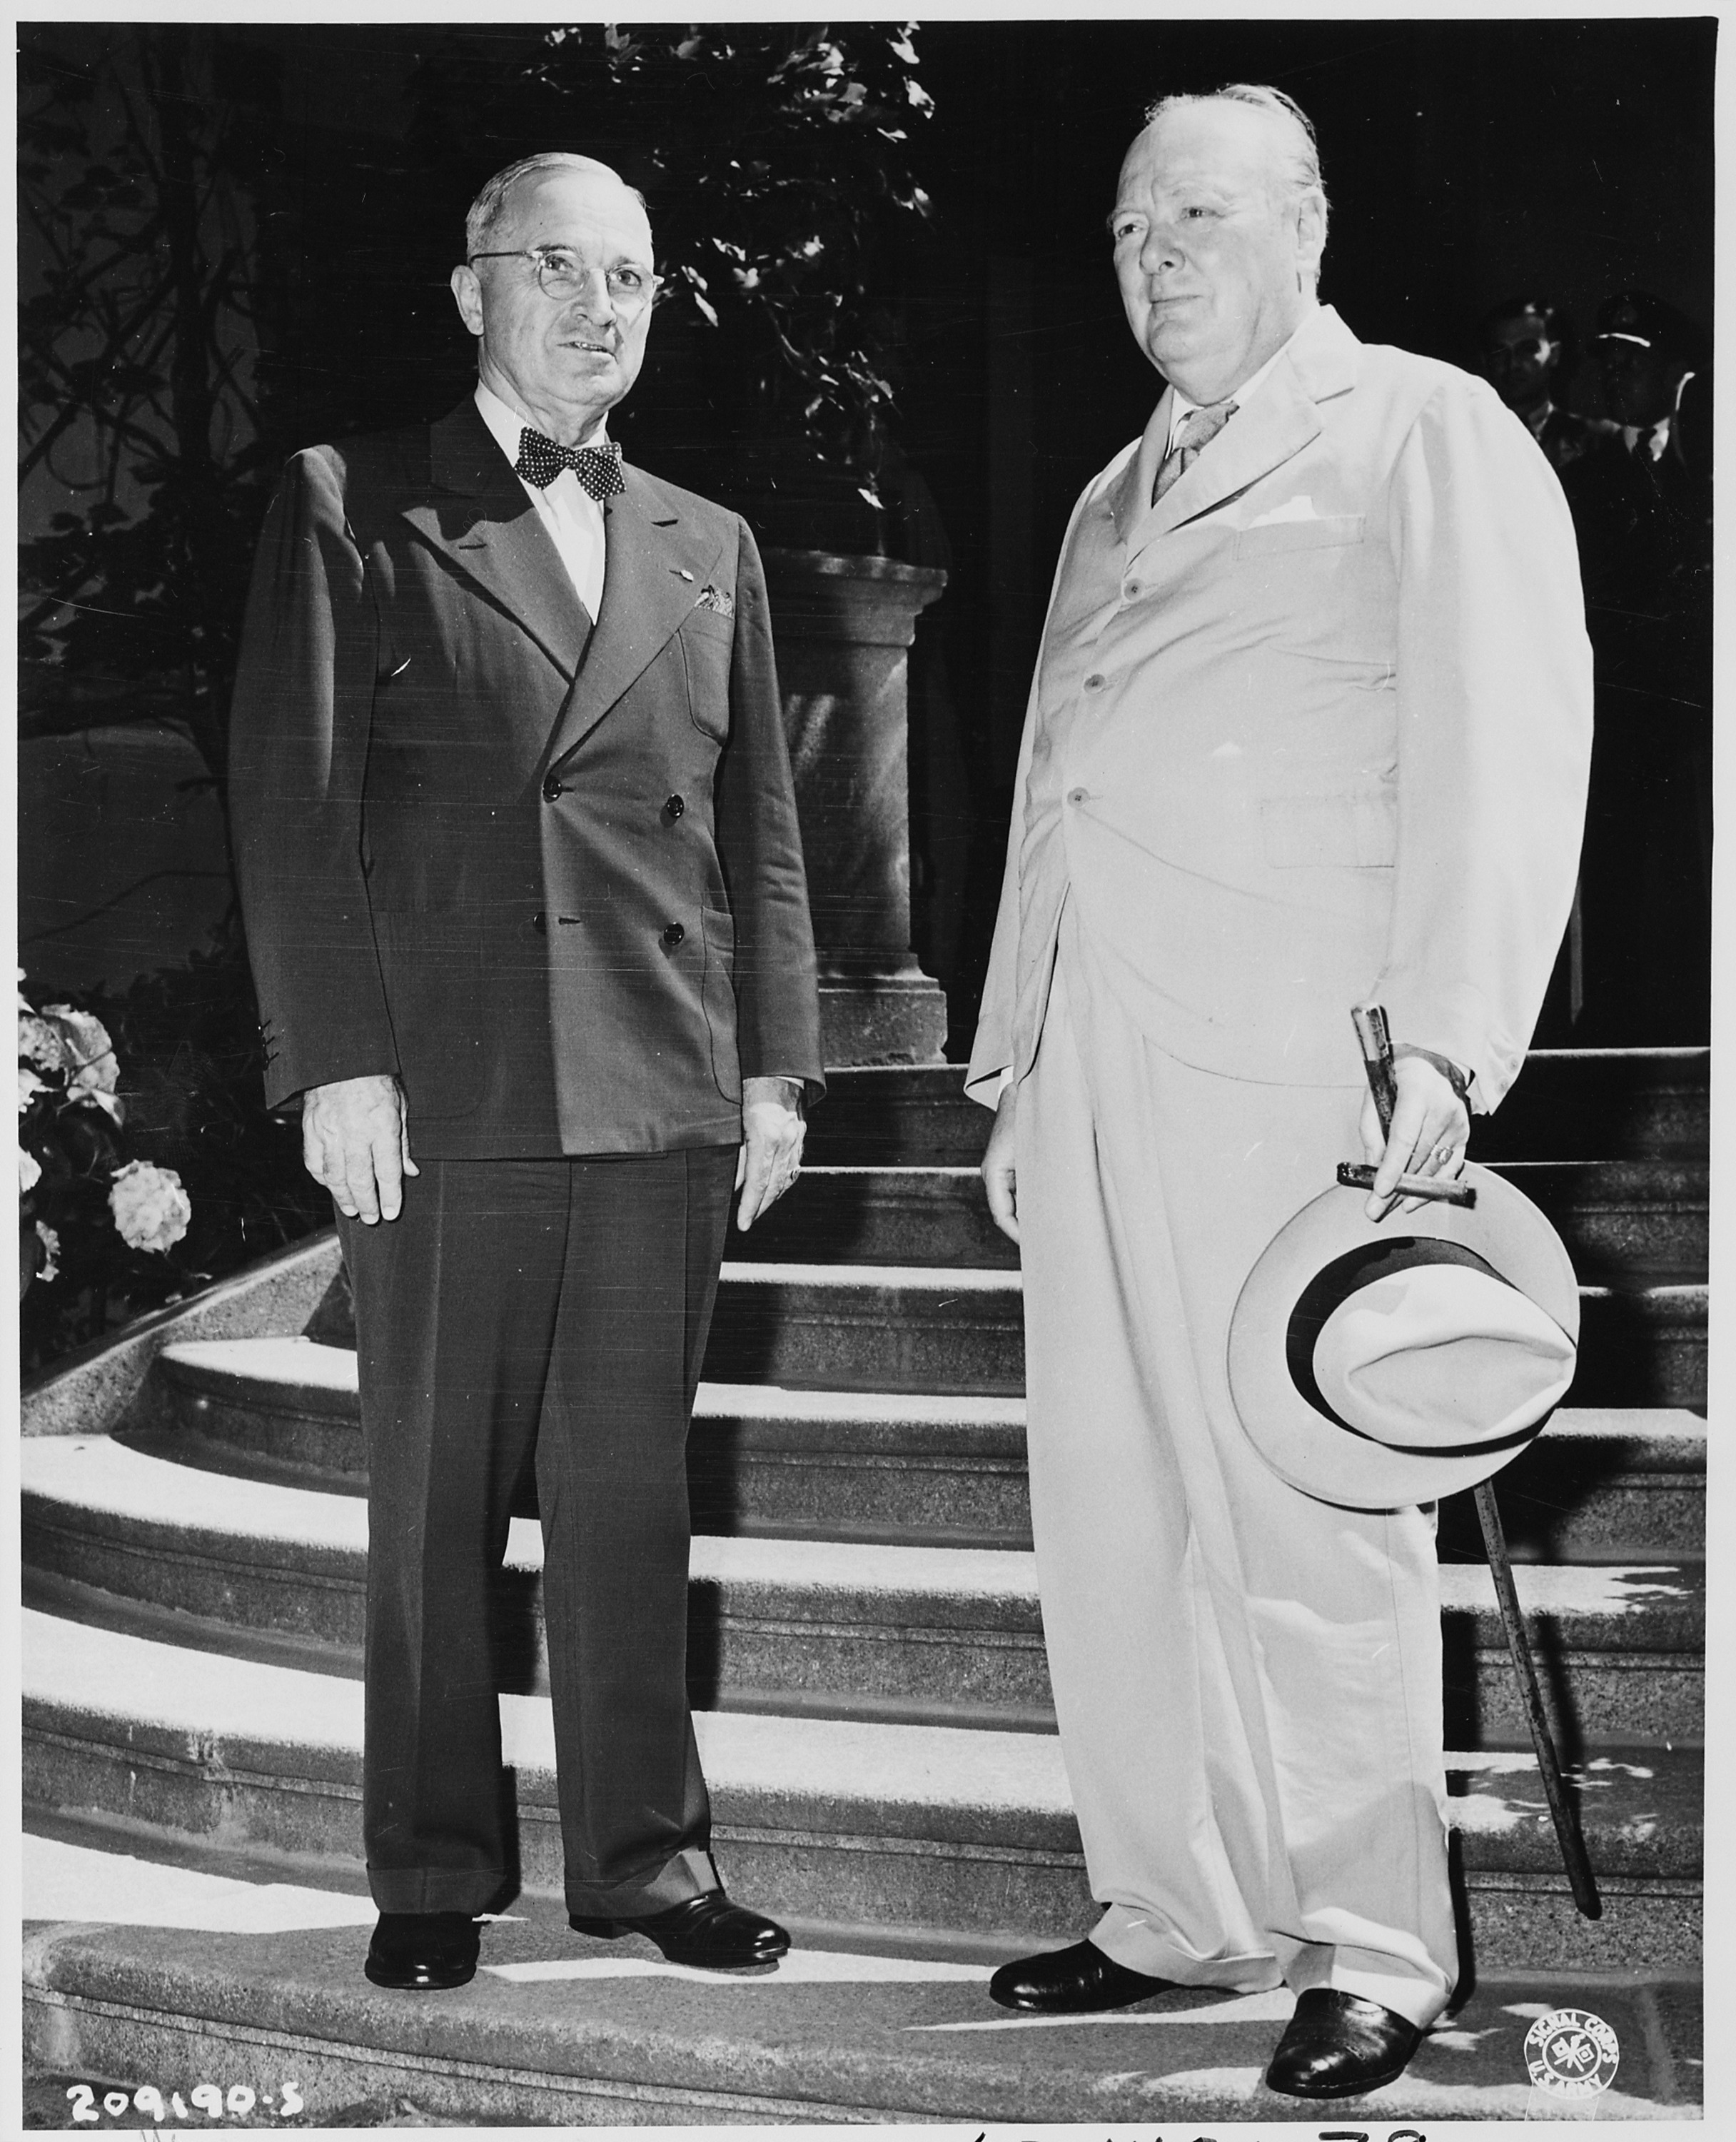 President_Harry_S._Truman_and_Prime_Minister_Winston_Churchill_on_the_steps_of_the_-Little_White_House,-_the..._-_NARA_-_198764